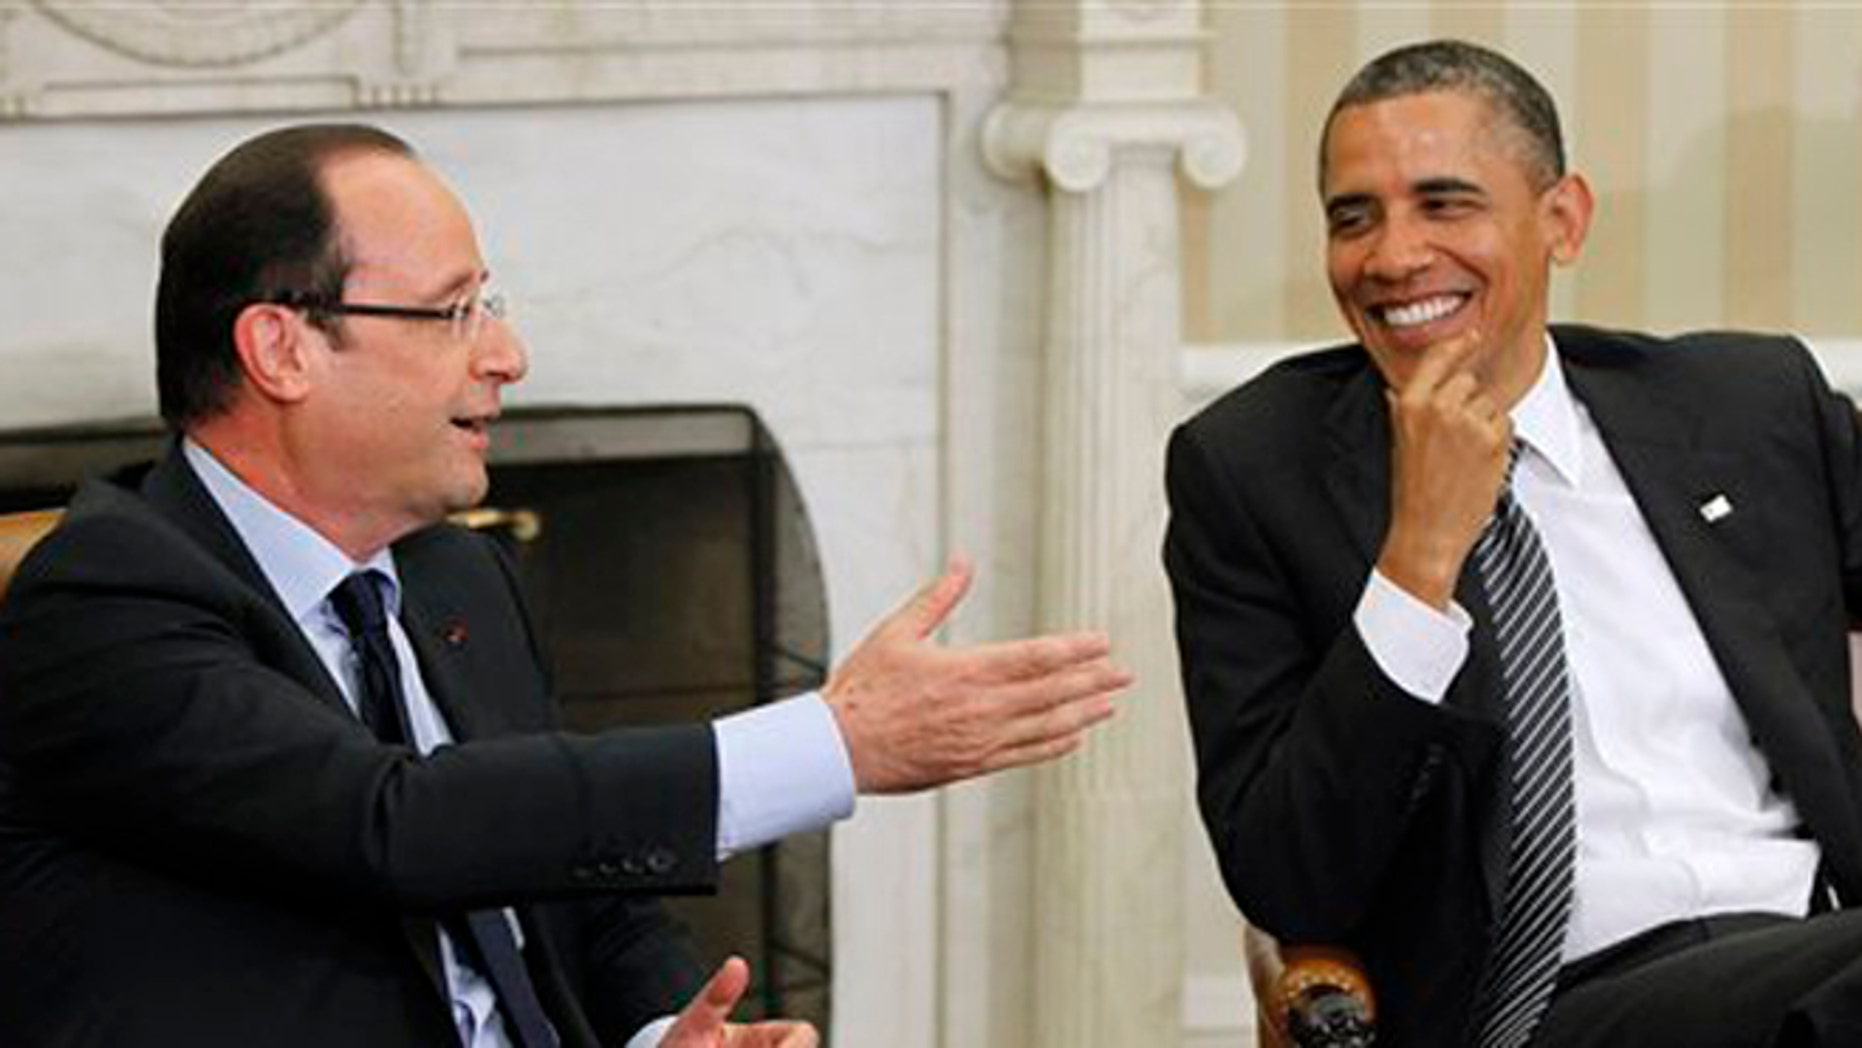 President Barack Obama meets with French President Francois Hollande, Friday, May 18, 2012, in the Oval Office of the White House.